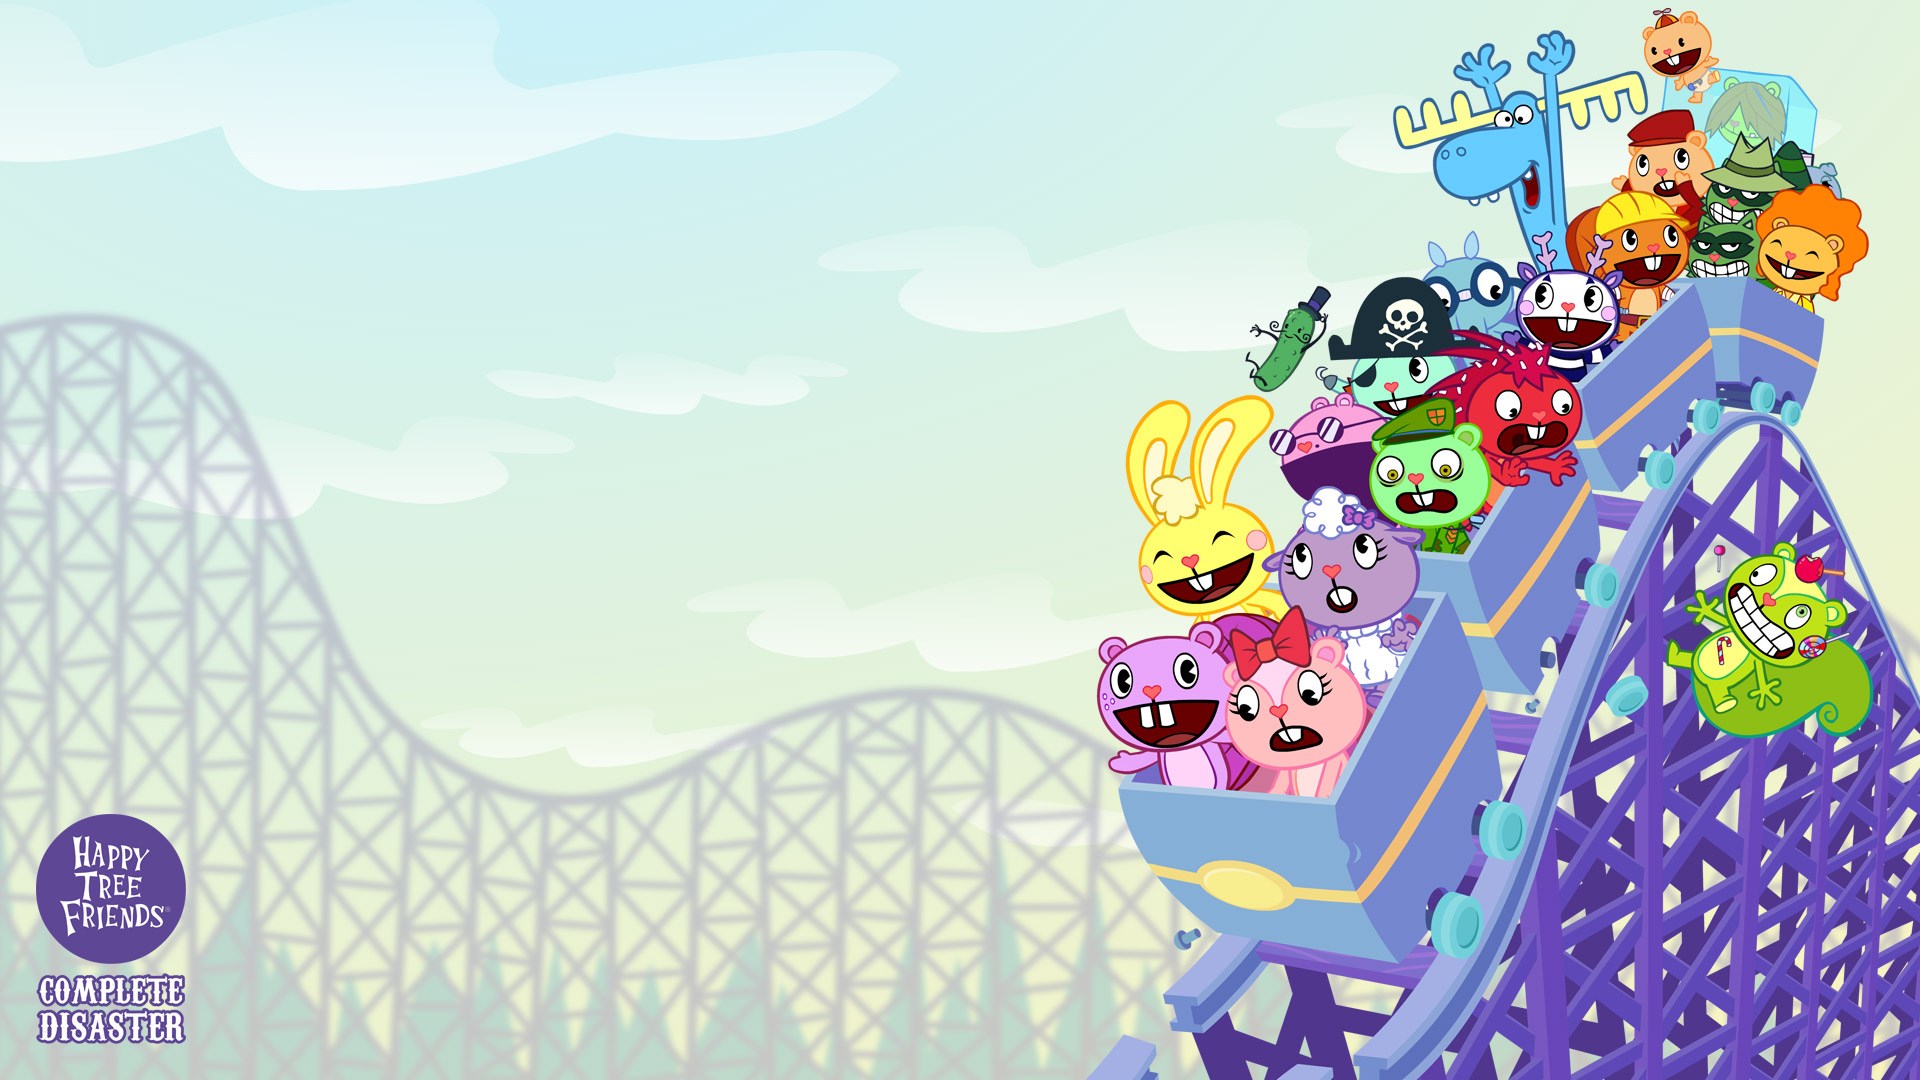 Happy Tree Friends Complete Disaster Wallpapers Happy Tree